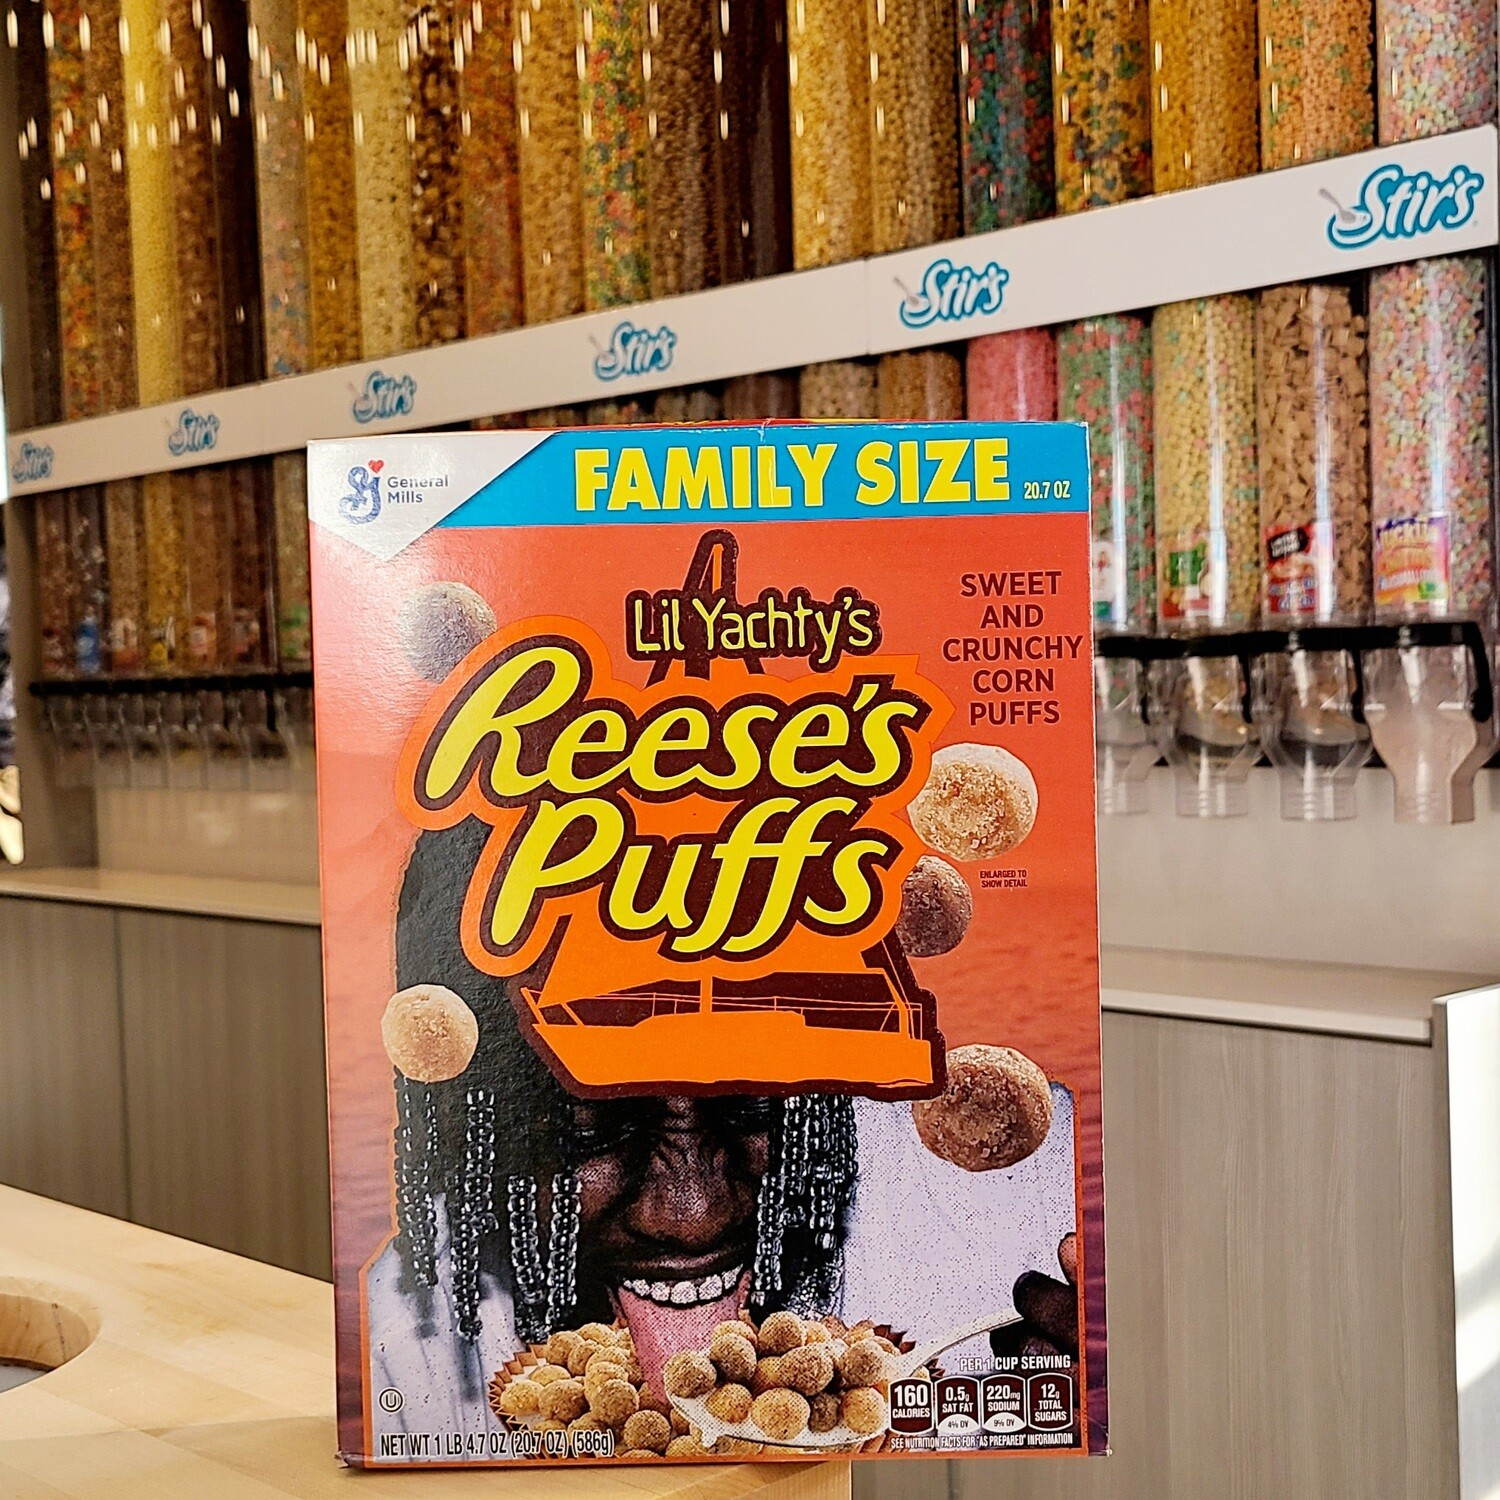 2 Lil Yachty's Reese's Puffs Boxes